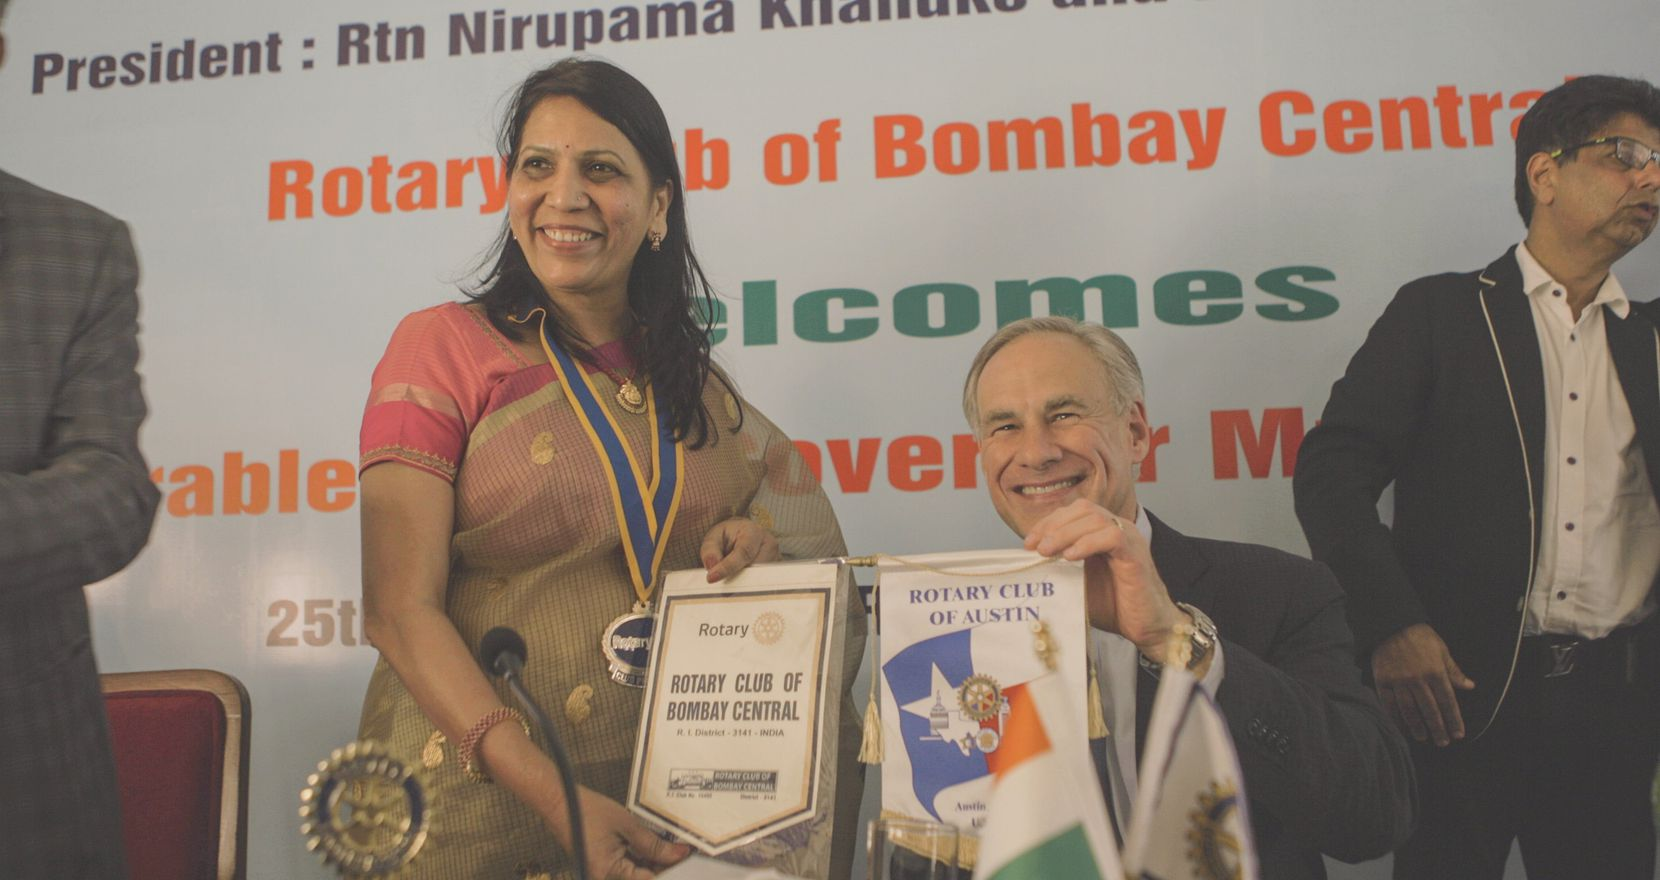 Texas Gov. Greg Abbott and Nirupama Khandke, president of the Rotary Club of Bombay Central, exchanged Rotary Club insignias after he spoke to her group in South Mumbai, India, on Sunday afternoon.